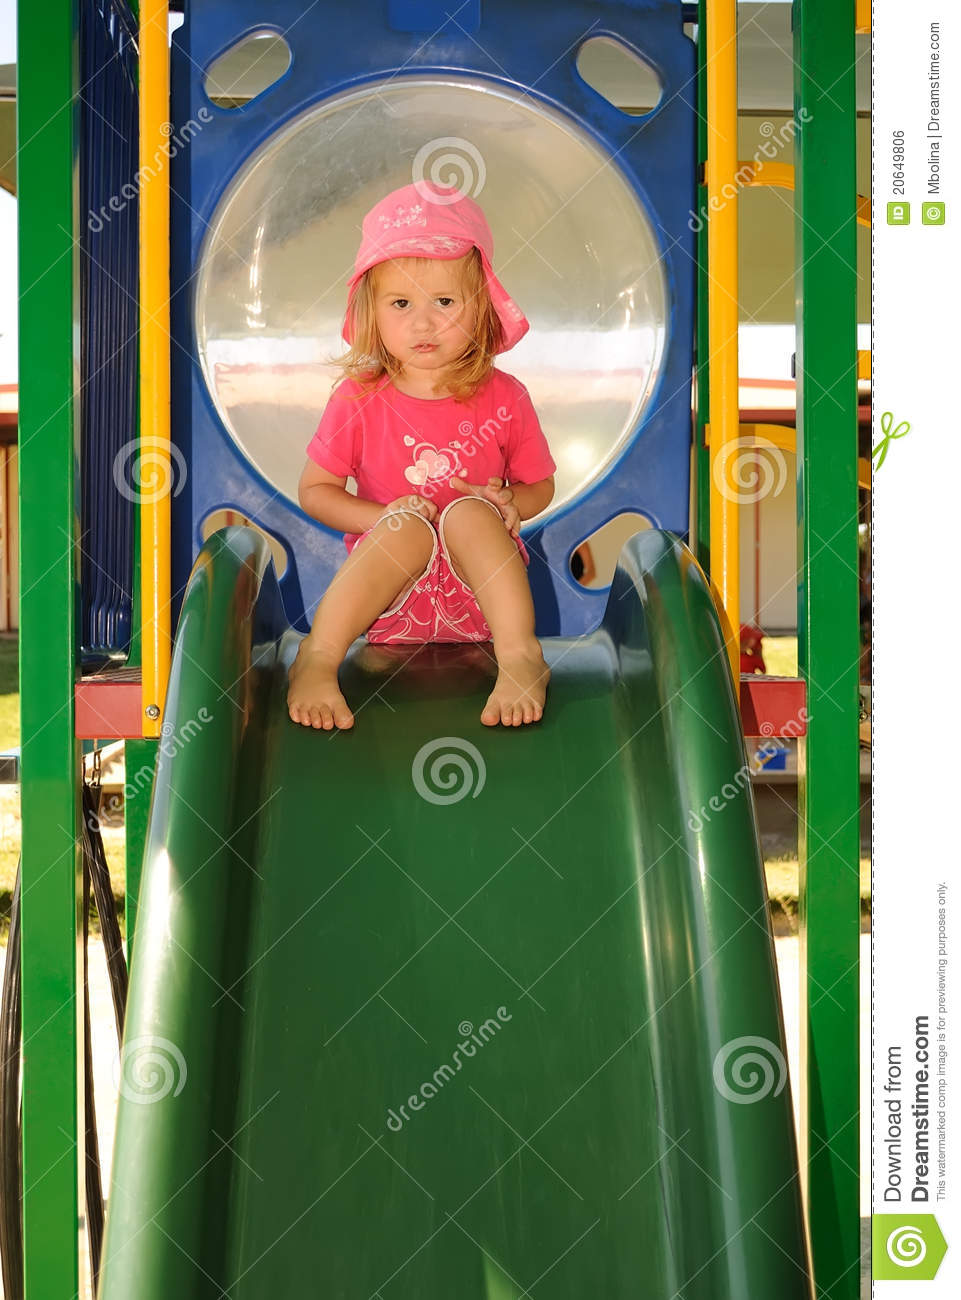 Lonely And Depressed >> Young Child Looking Sad On A Playground Slide Stock Photo - Image of emotional, calm: 20649806